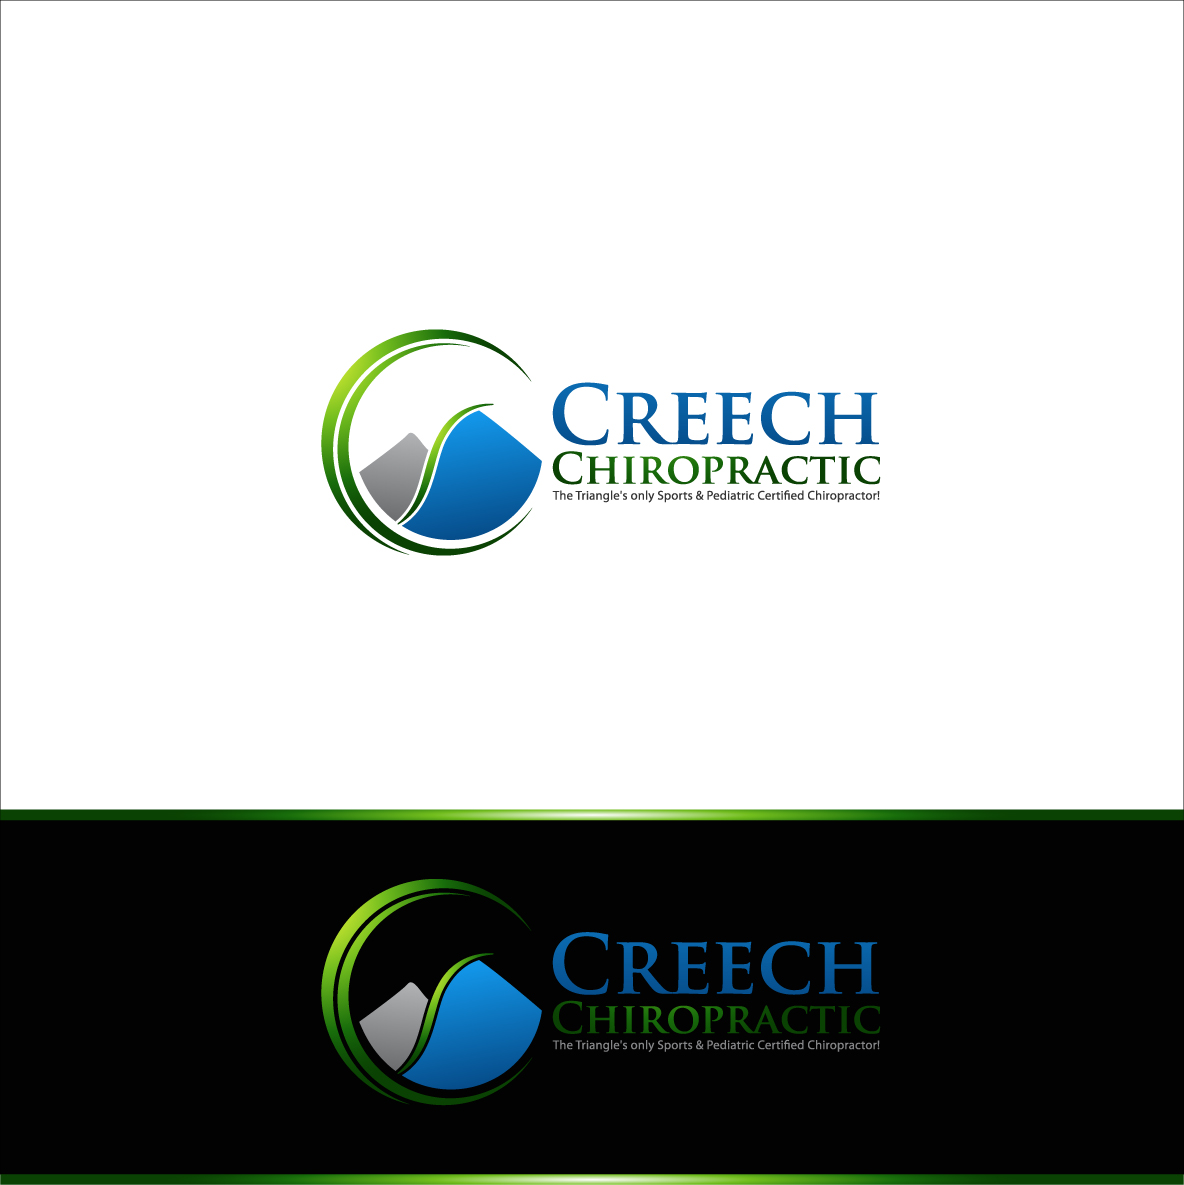 Logo Design by zoiDesign - Entry No. 98 in the Logo Design Contest Imaginative Logo Design for Creech Chiropractic.